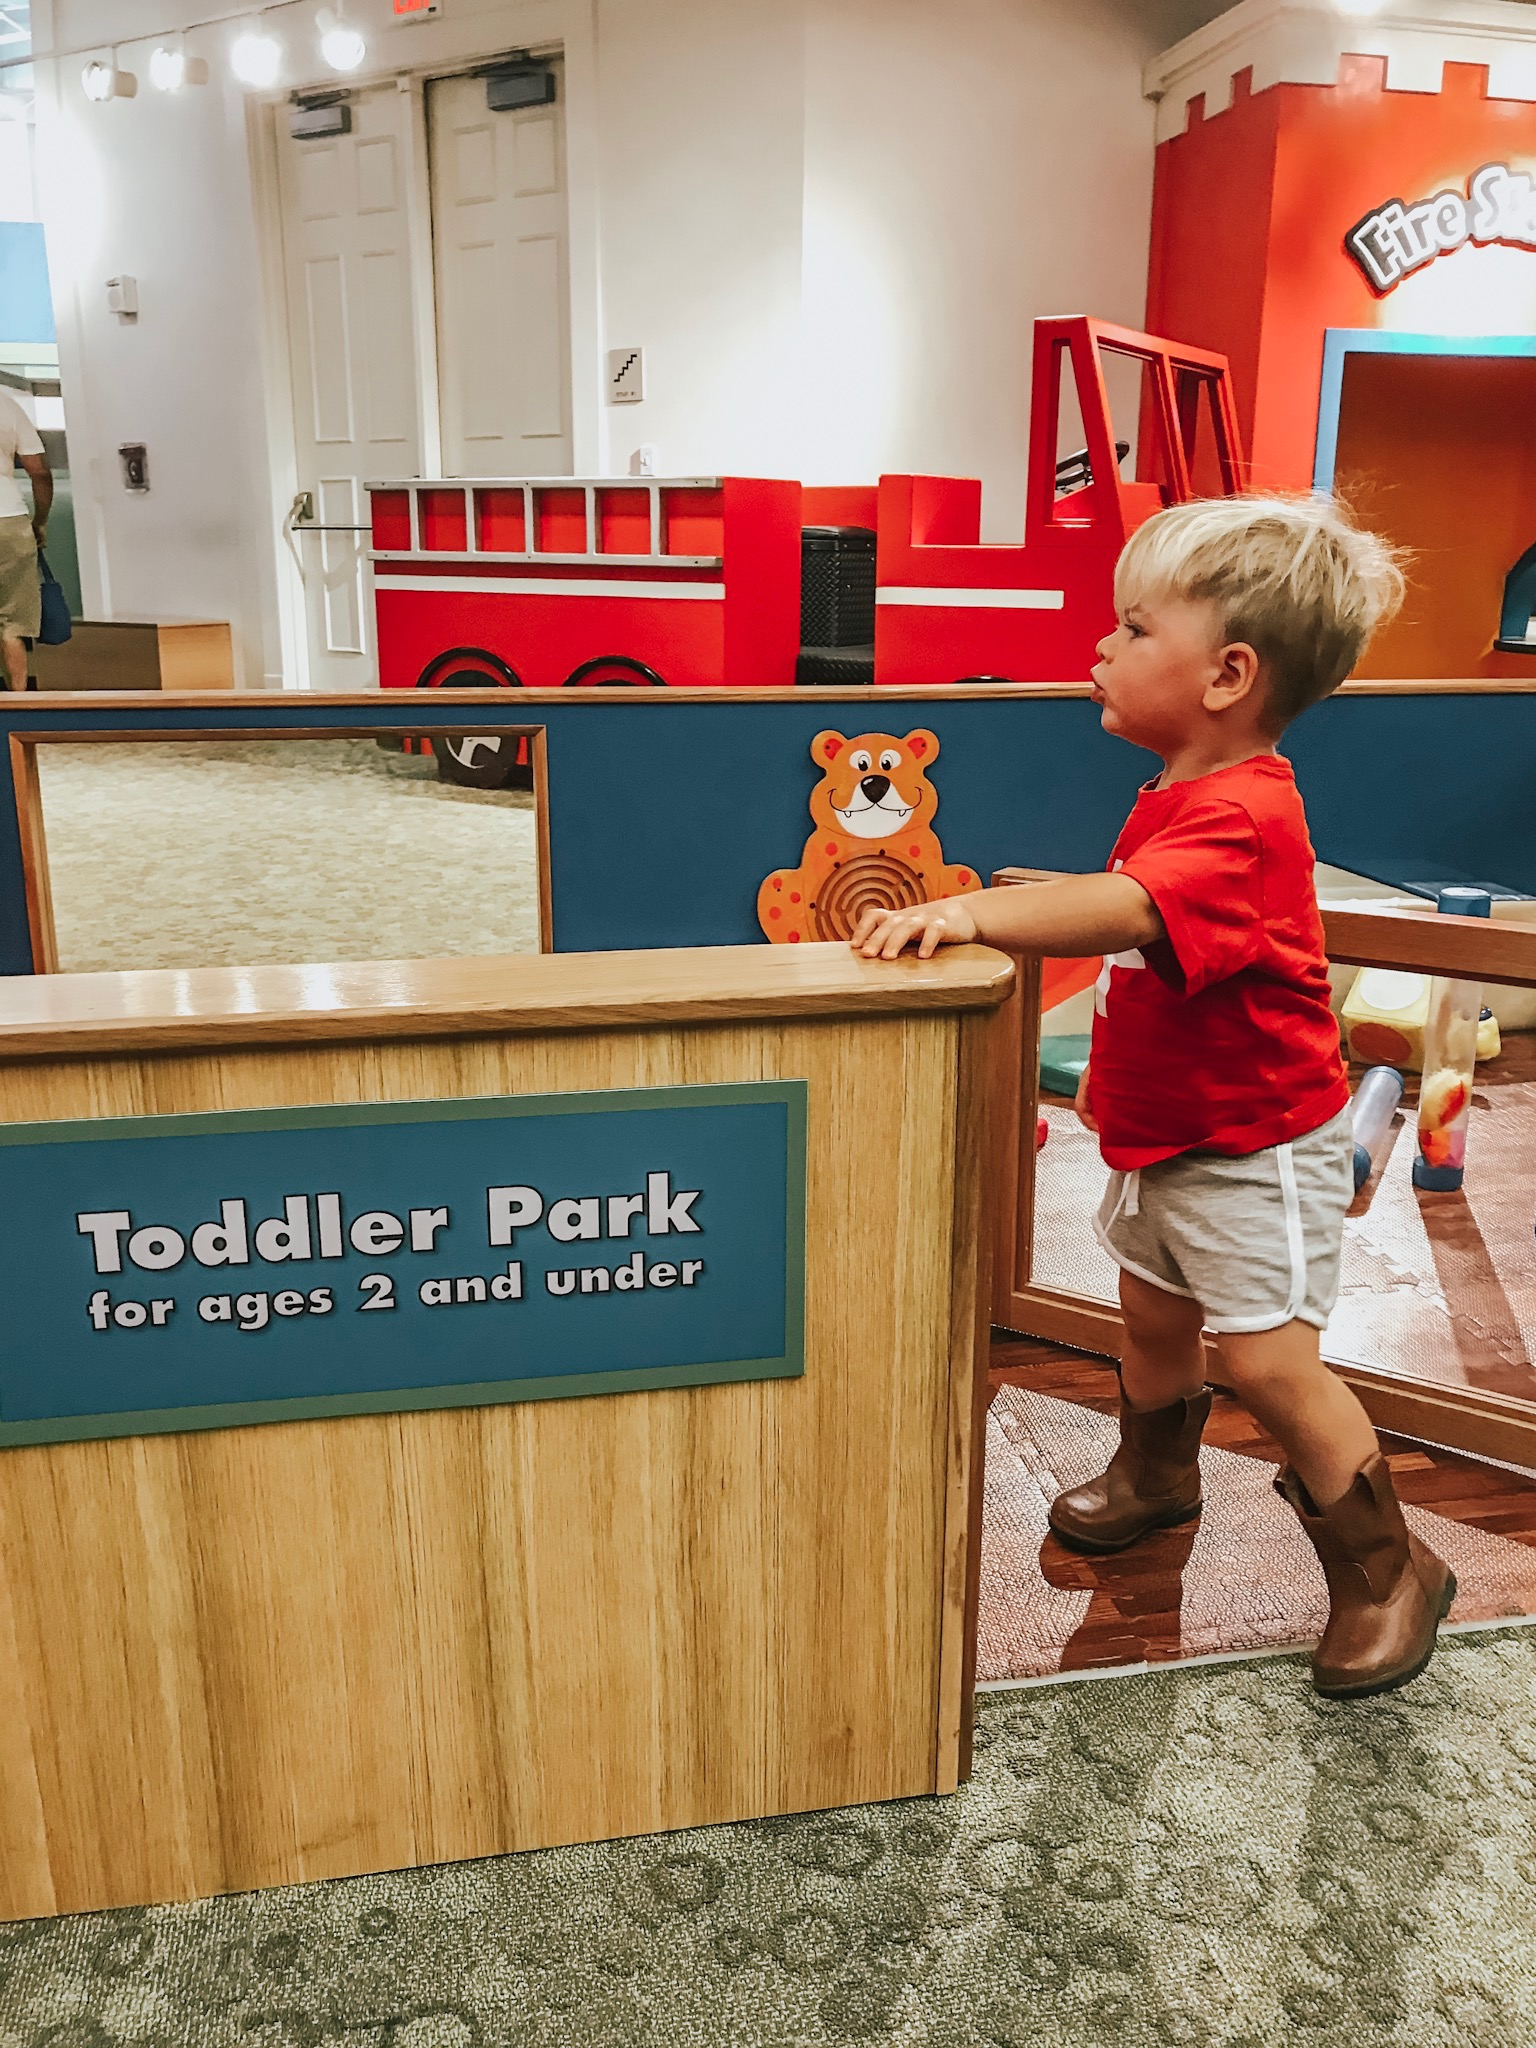 Not only was there a room for younger kids, at the mayborn , they even have a toddler park